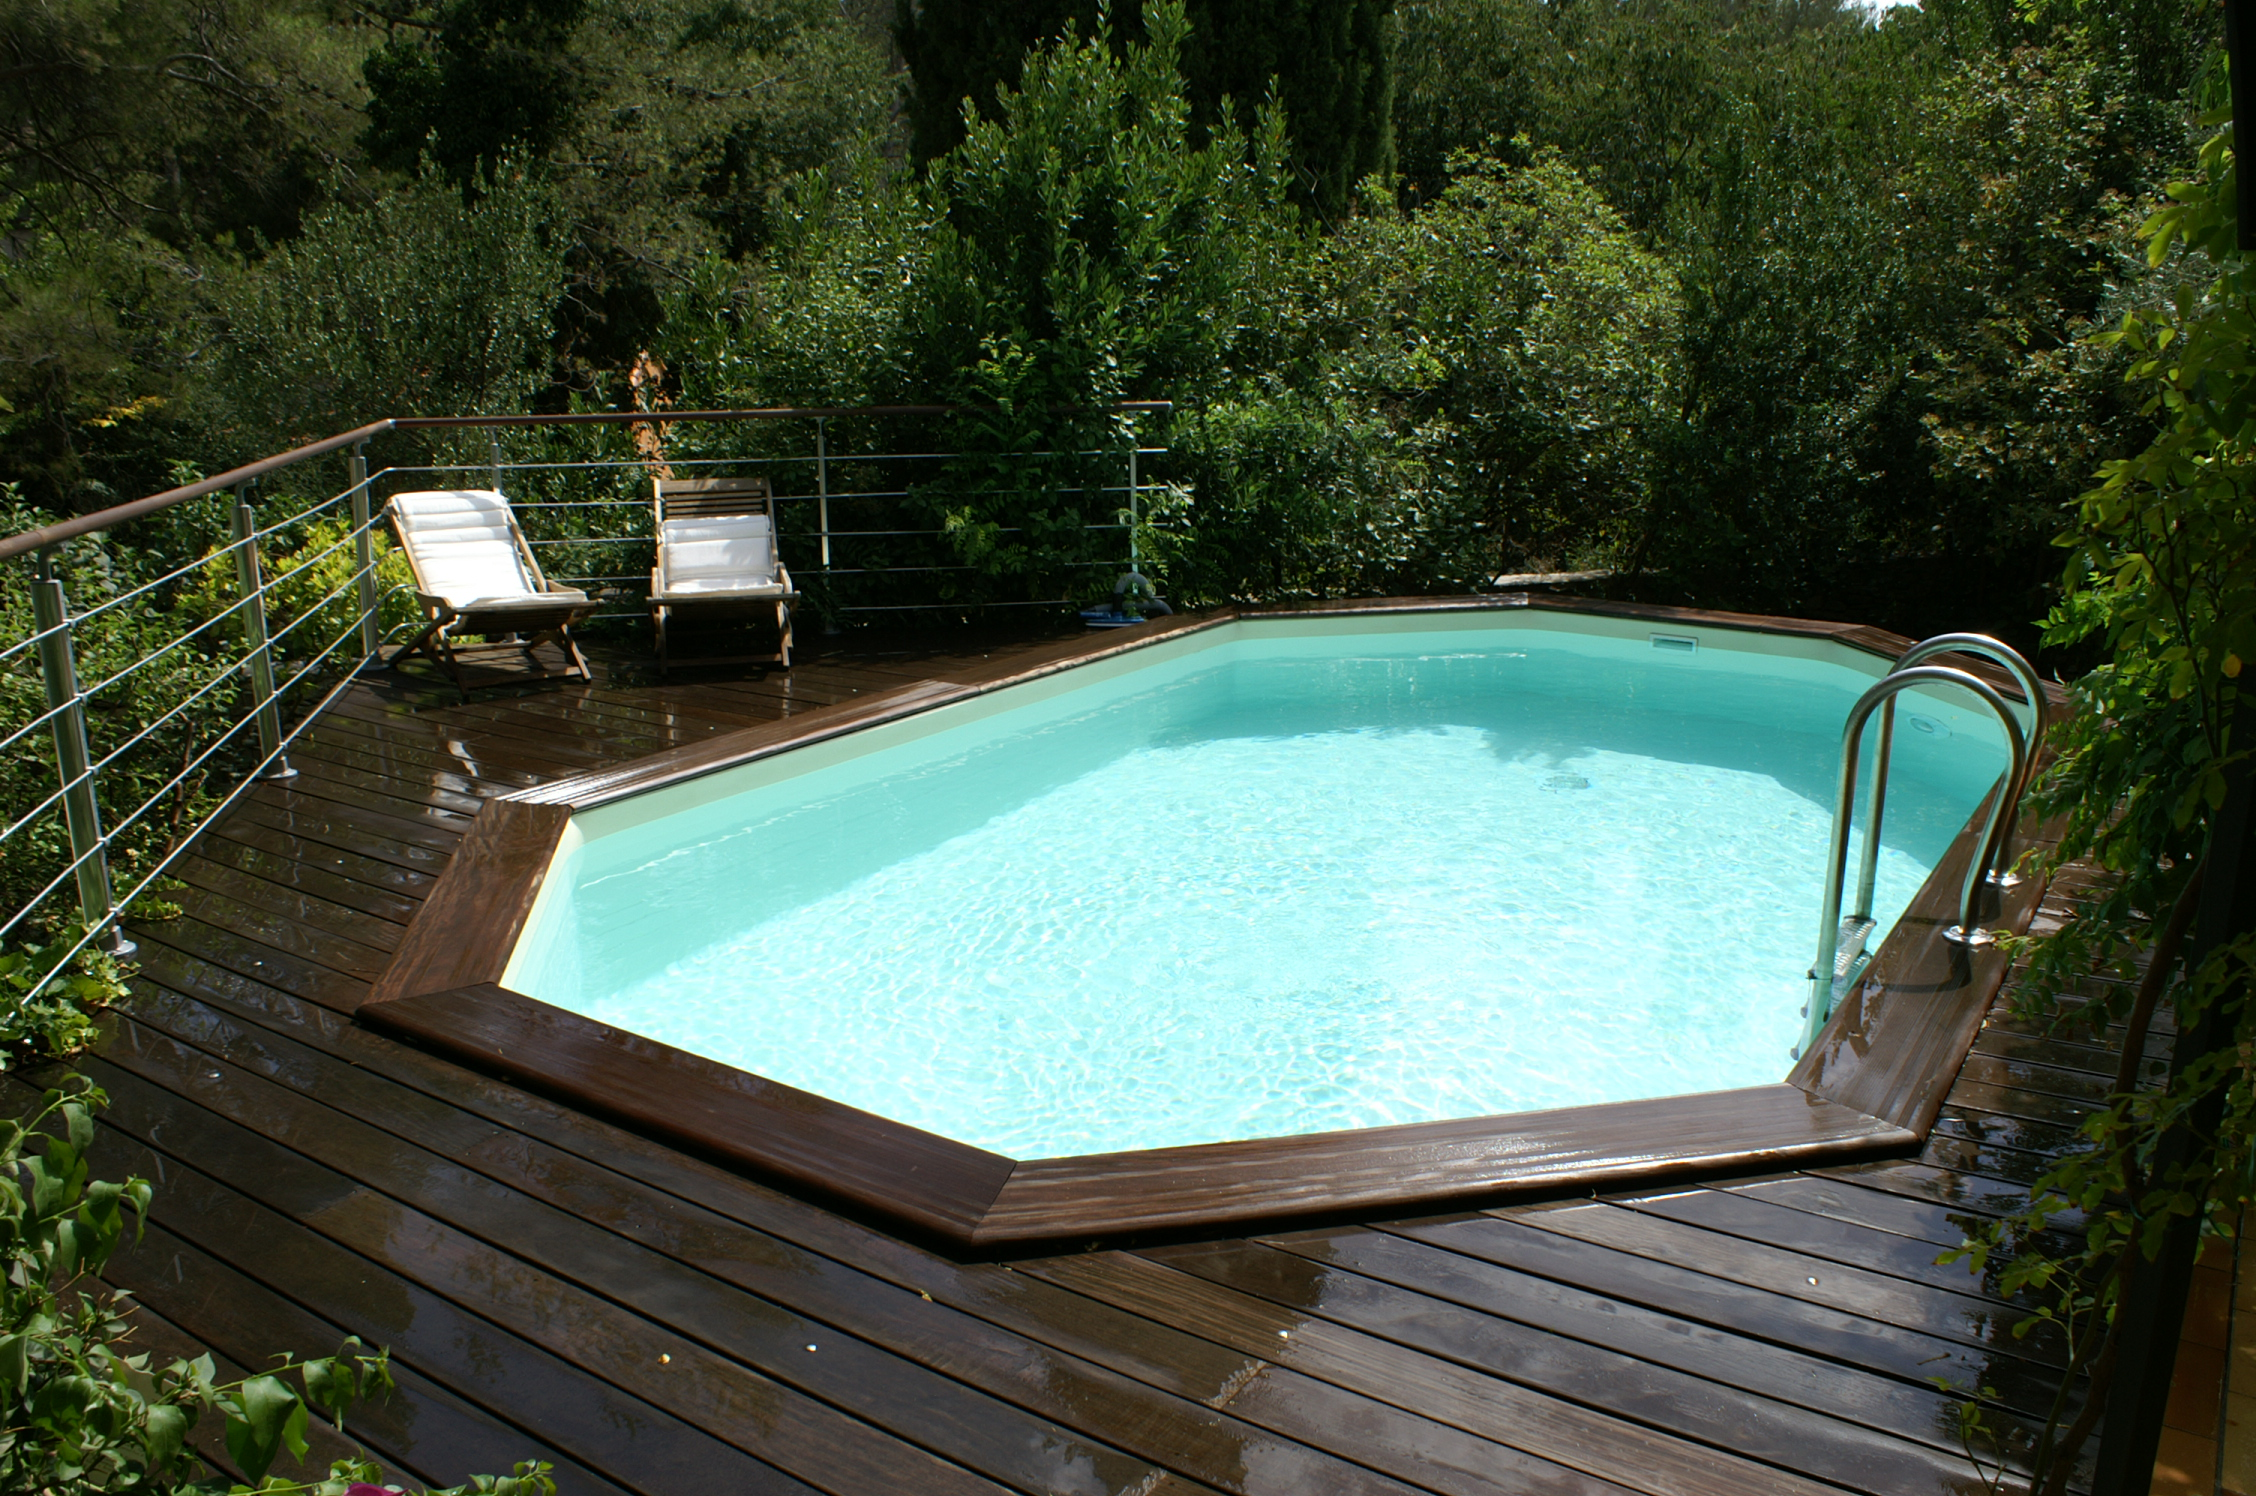 Amenagement piscine bois hors sol id es for Amenagement piscine terrasse